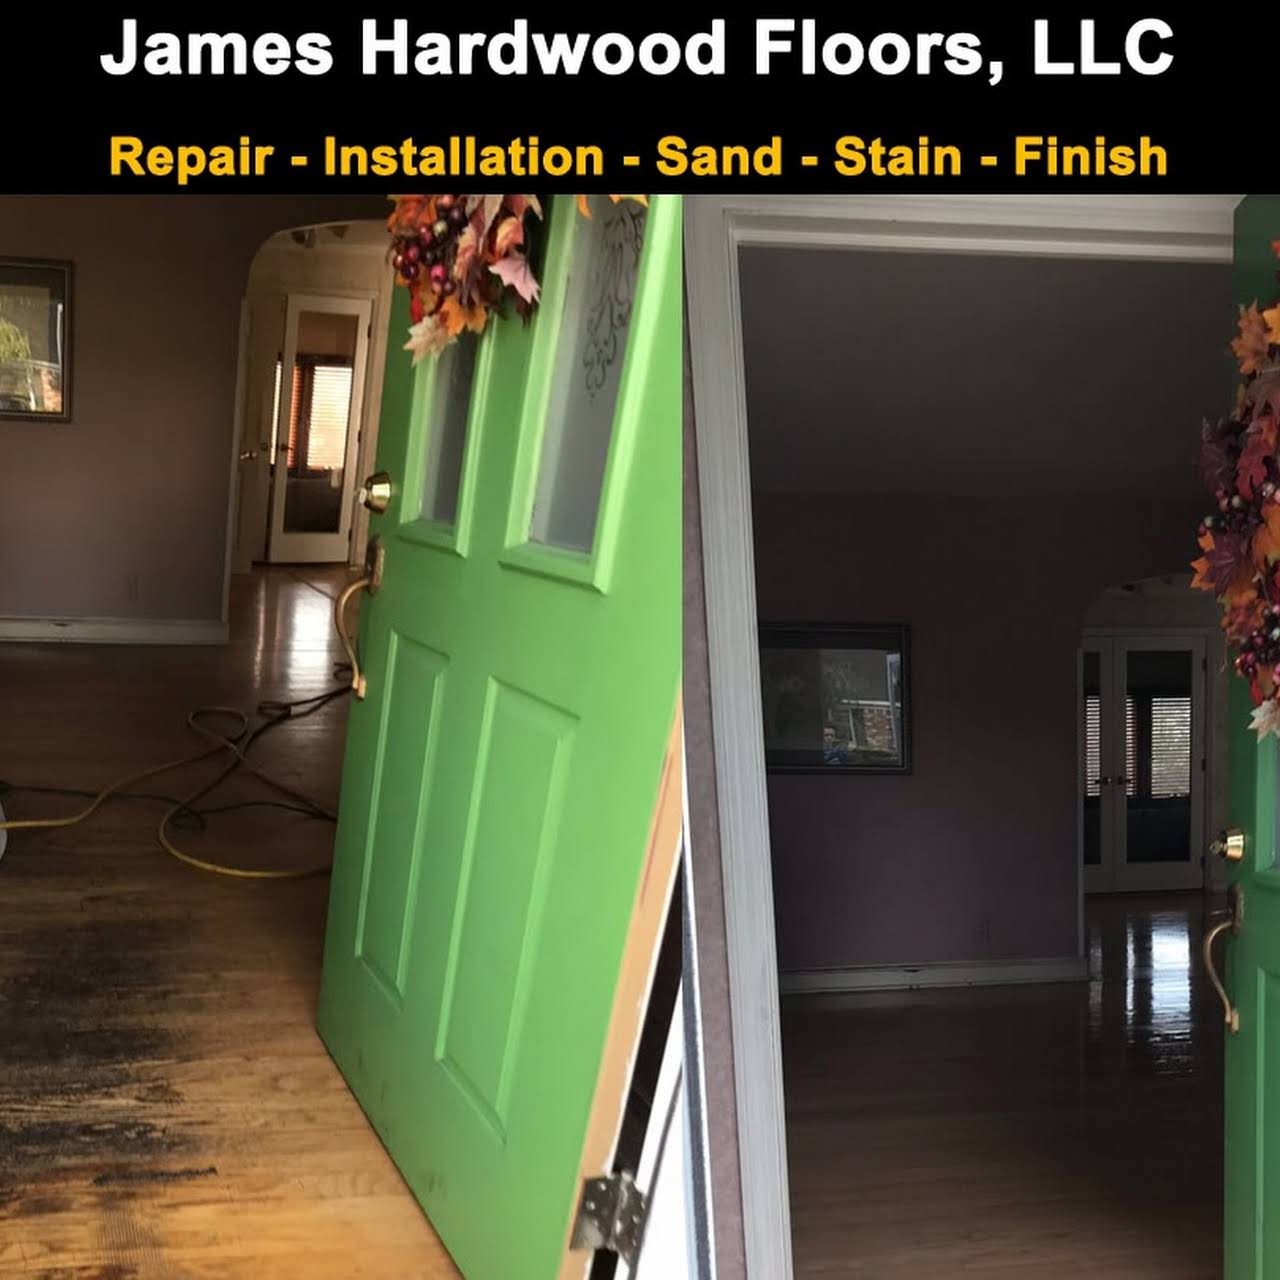 cost to re sand and finish hardwood floors of james hardwood floorsa llc local contractor no retail price again with how can we help y